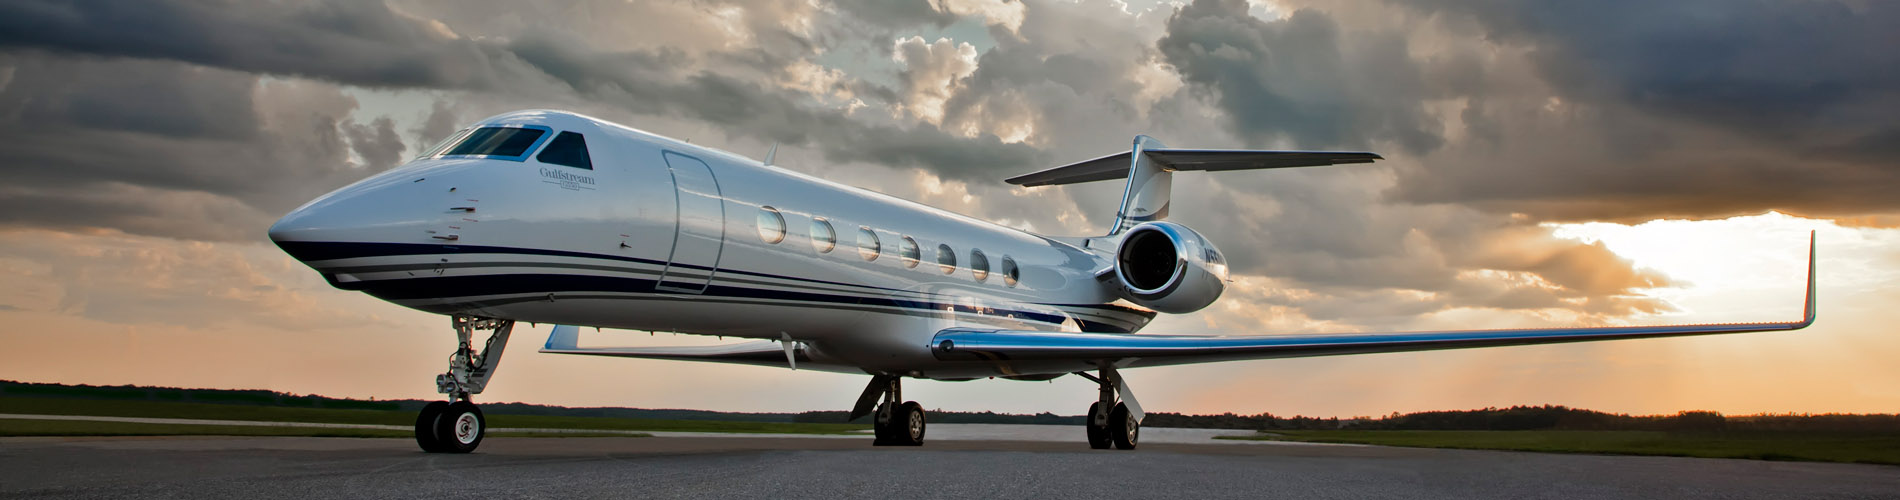 Executive Charter Flights Traveling For The Business Class